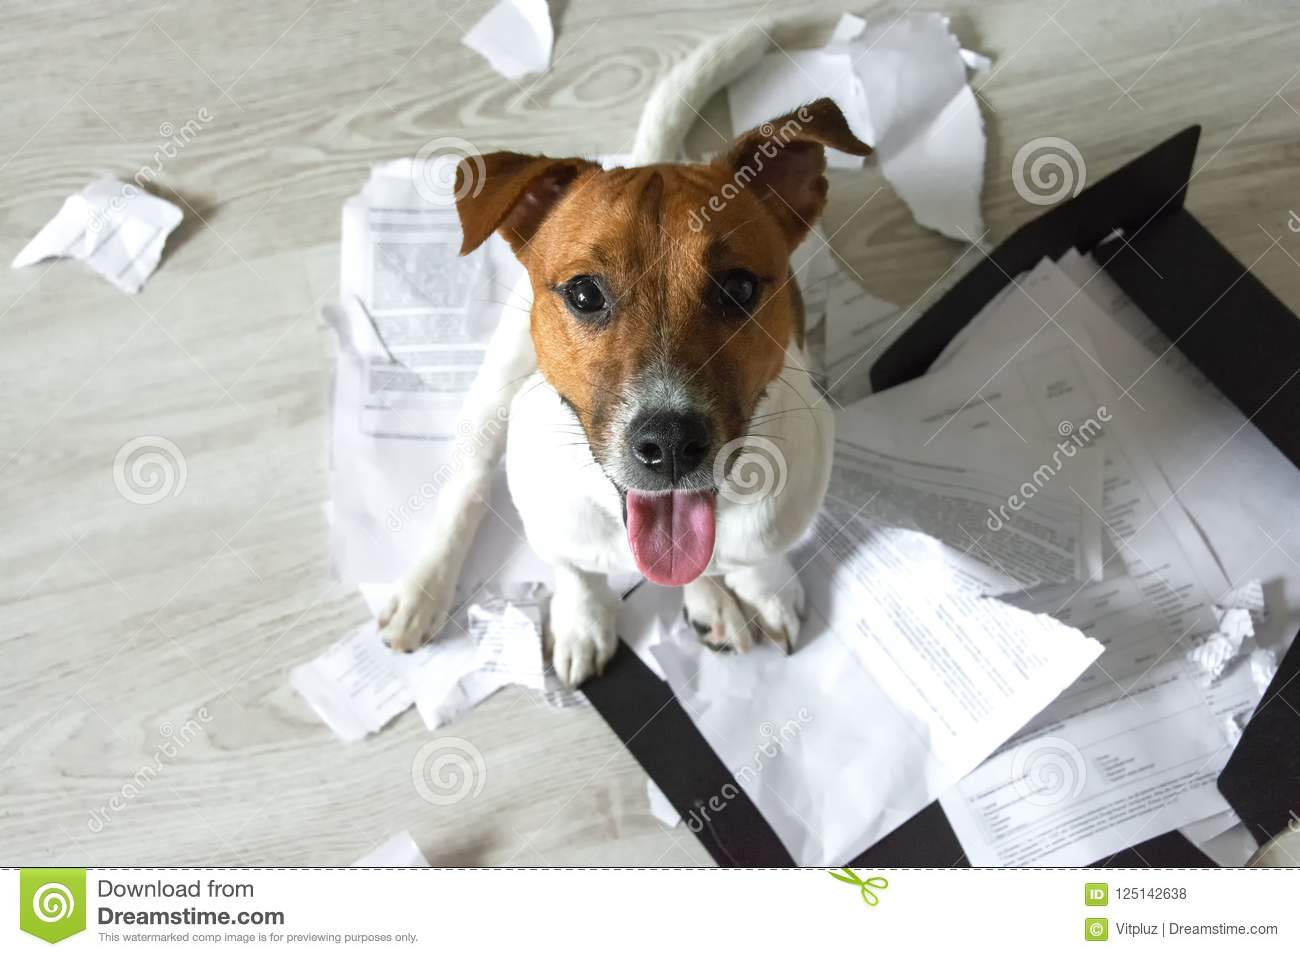 Bad dog on the torn pieces of documents